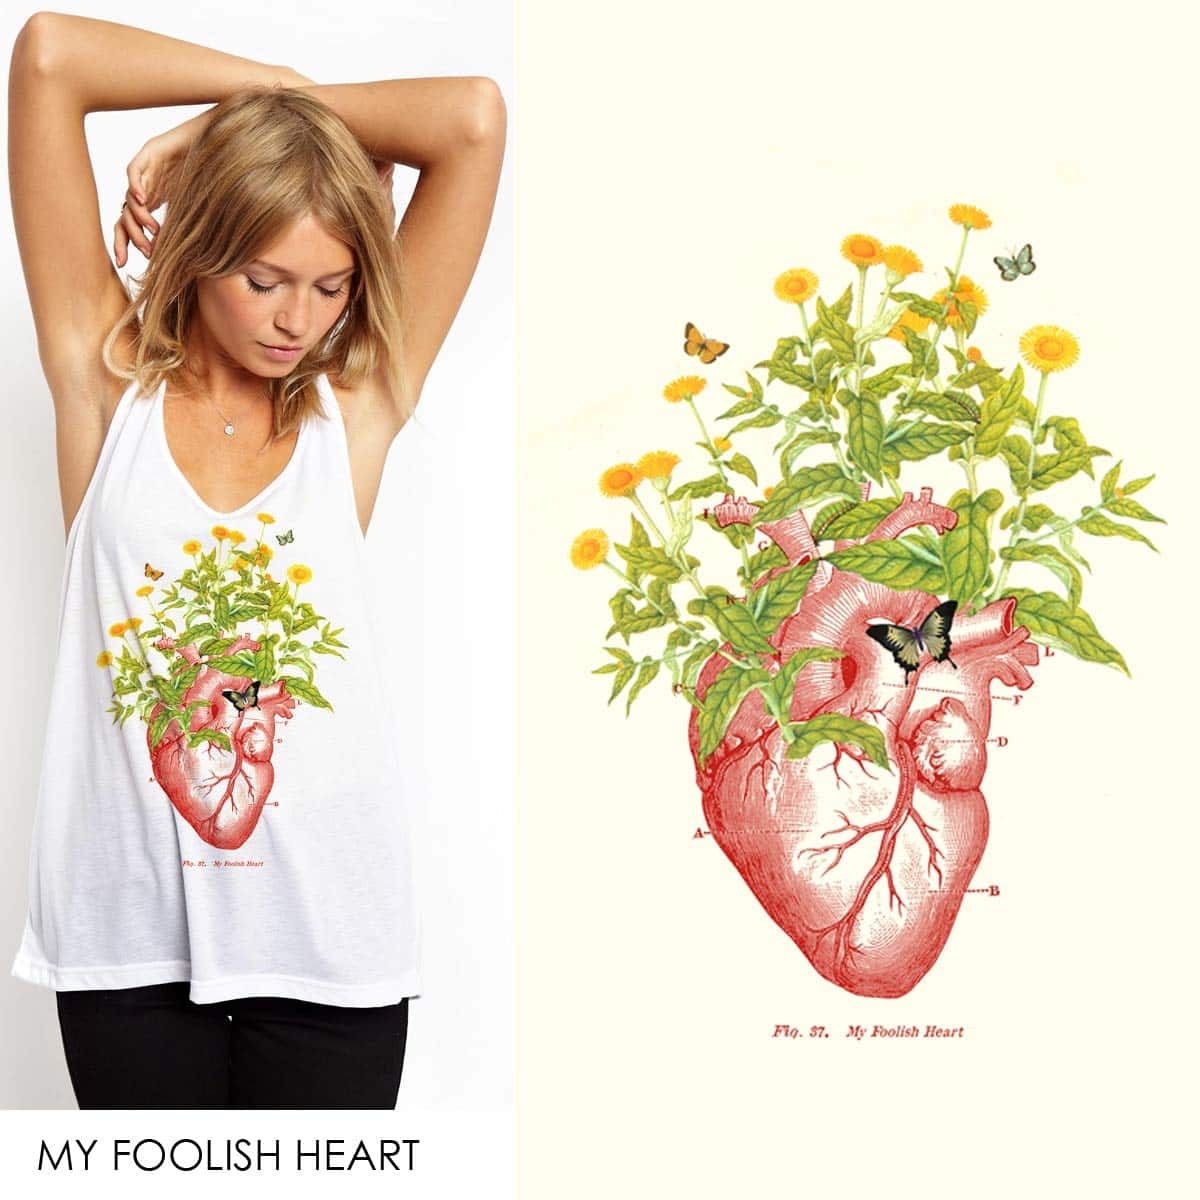 My foolish heart by radiomode on Threadless